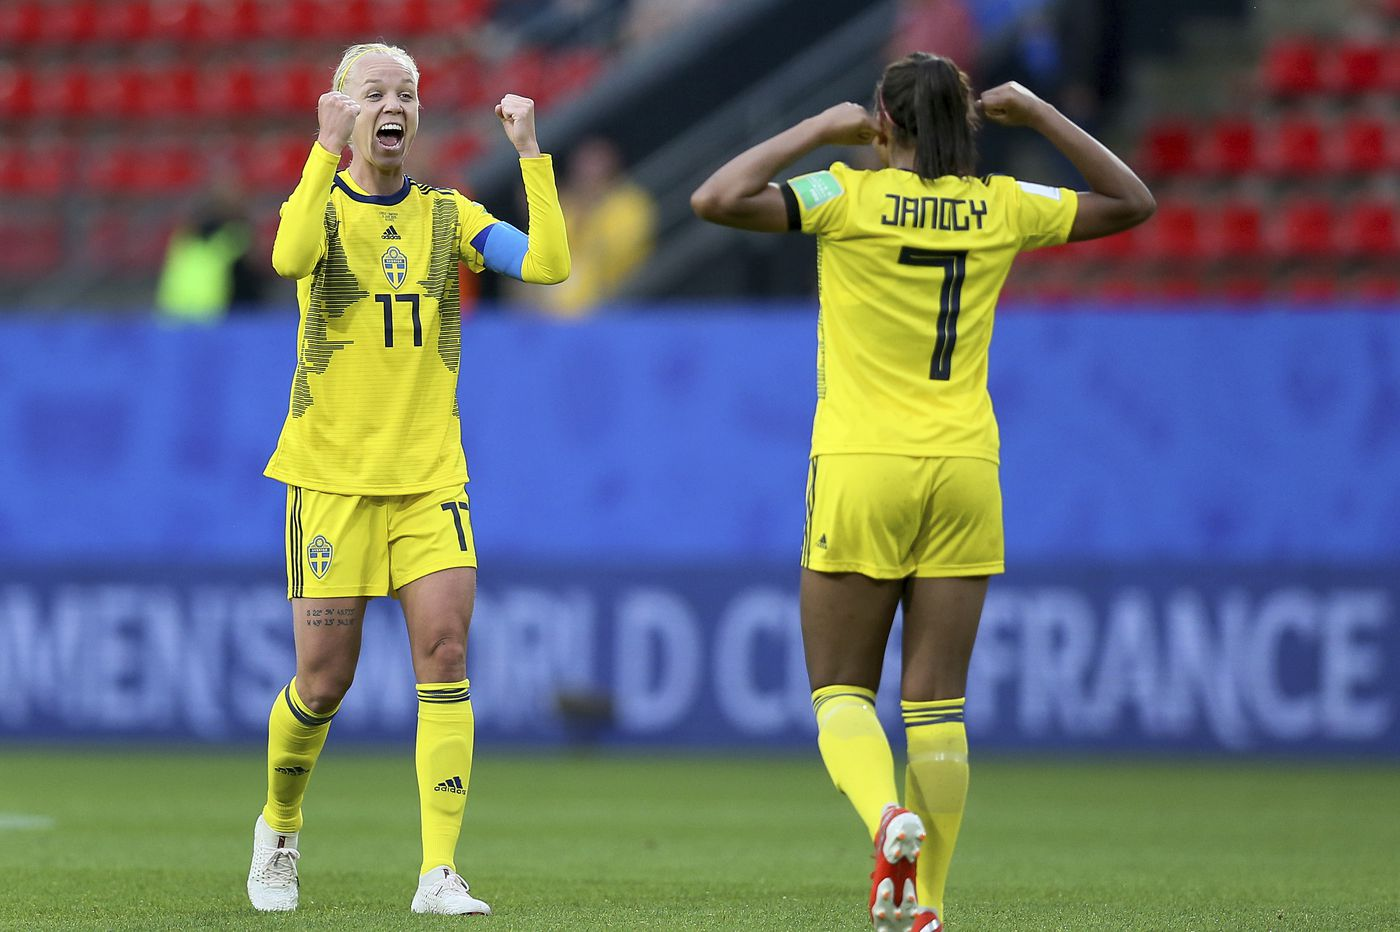 Sweden defeats Women's World Cup newcomers Chile 2-0 after storm delay